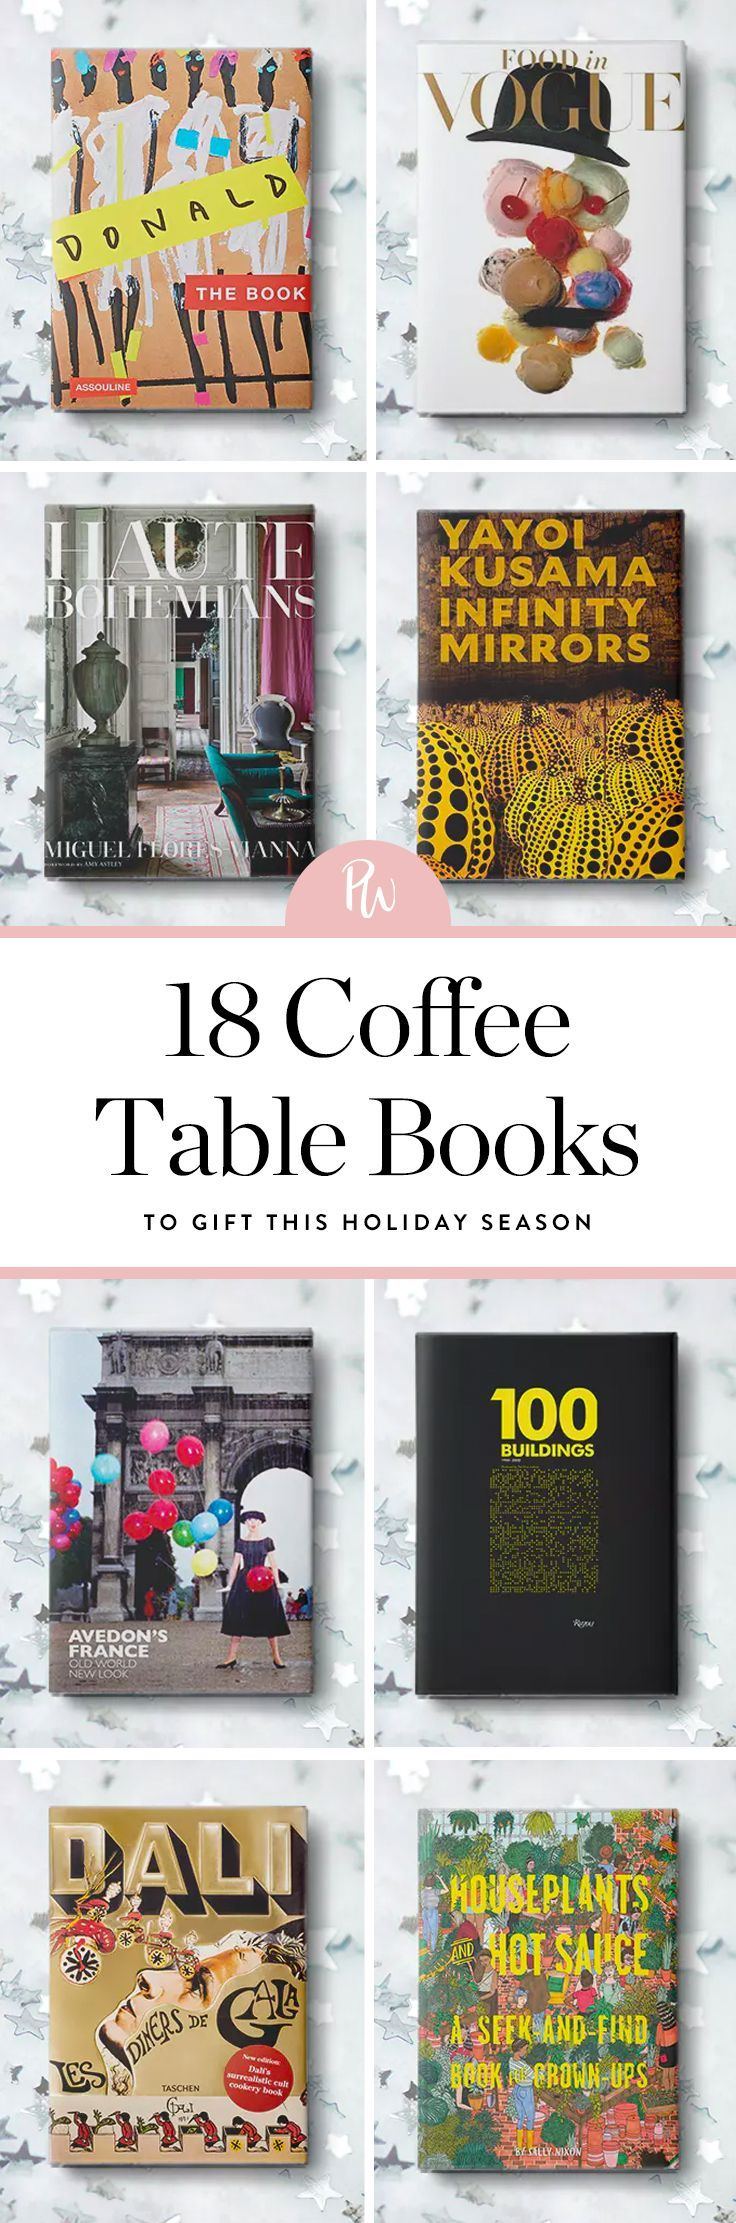 69 best coffee table books images on pinterest coffee table 18 coffee table books to gift this holiday season geotapseo Choice Image